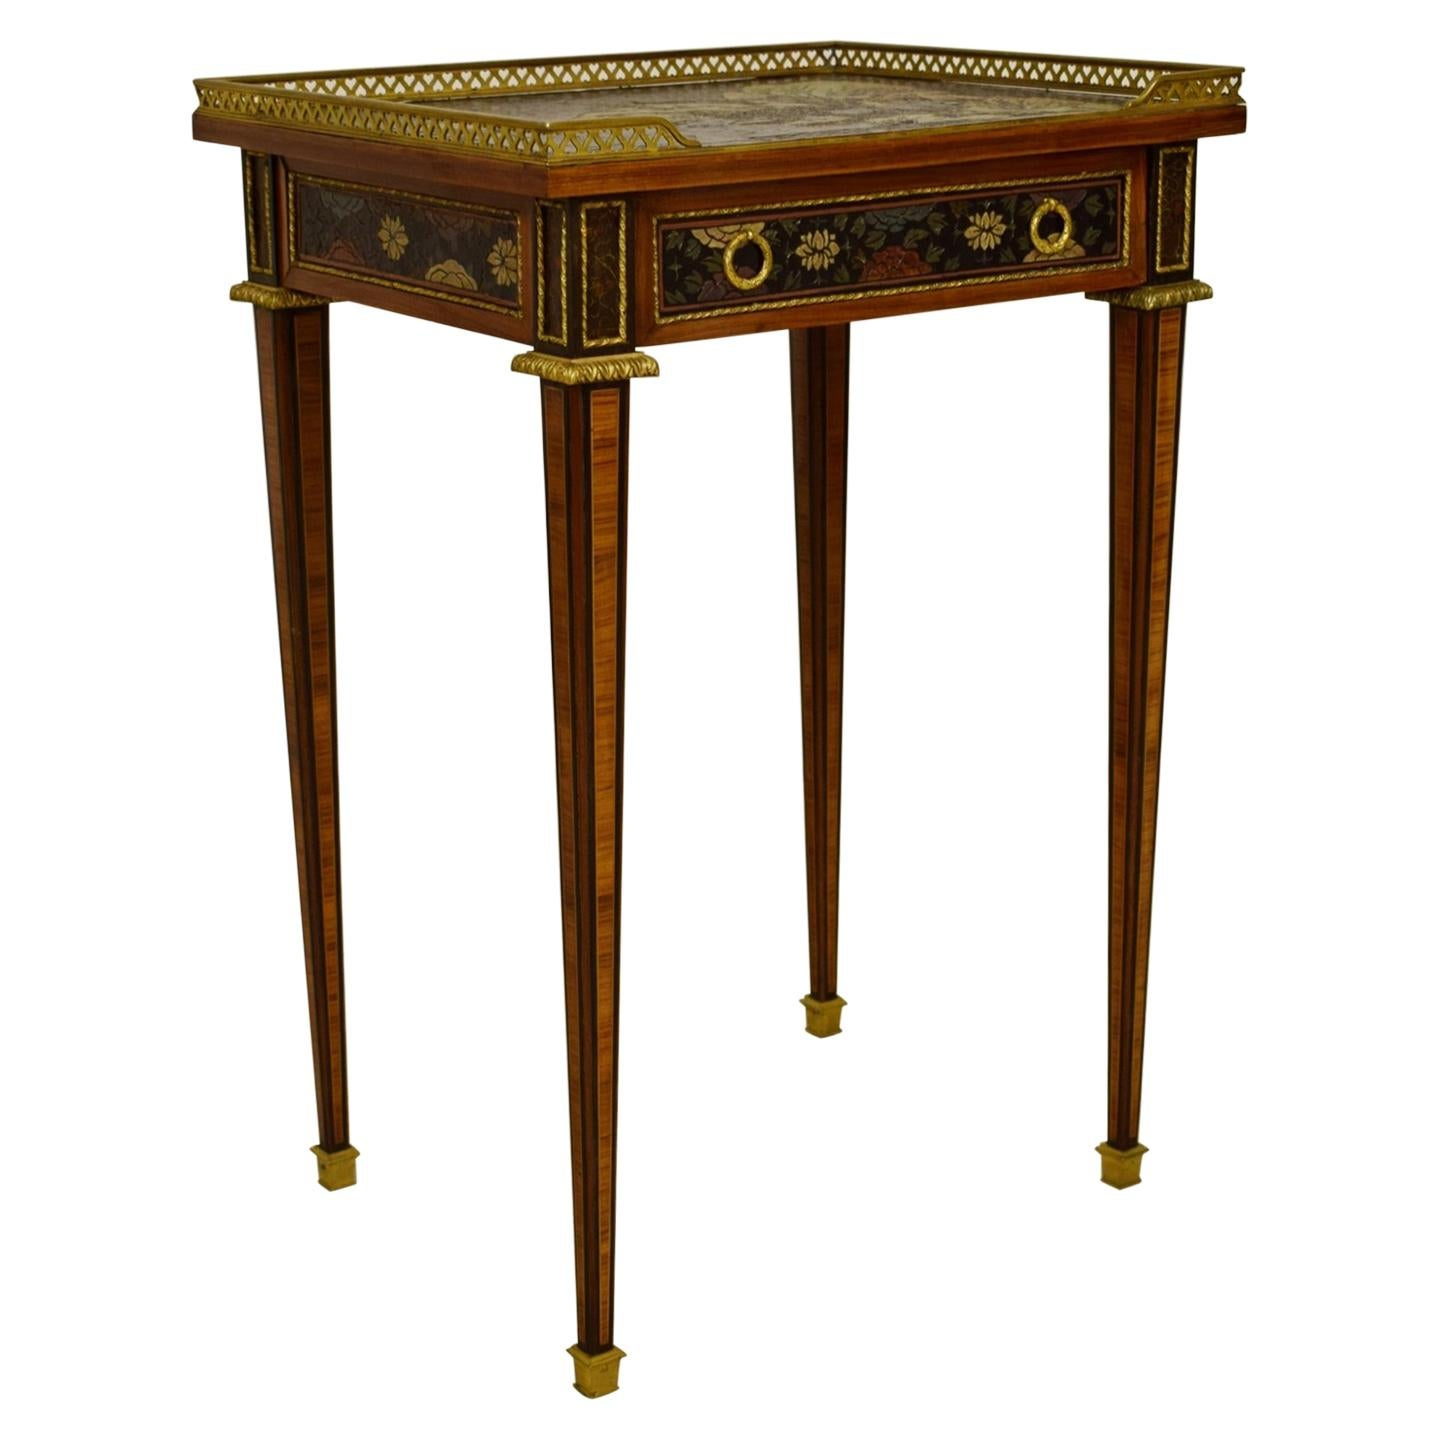 19th Century, French Chinoiserie Lacquered Wood Center Table